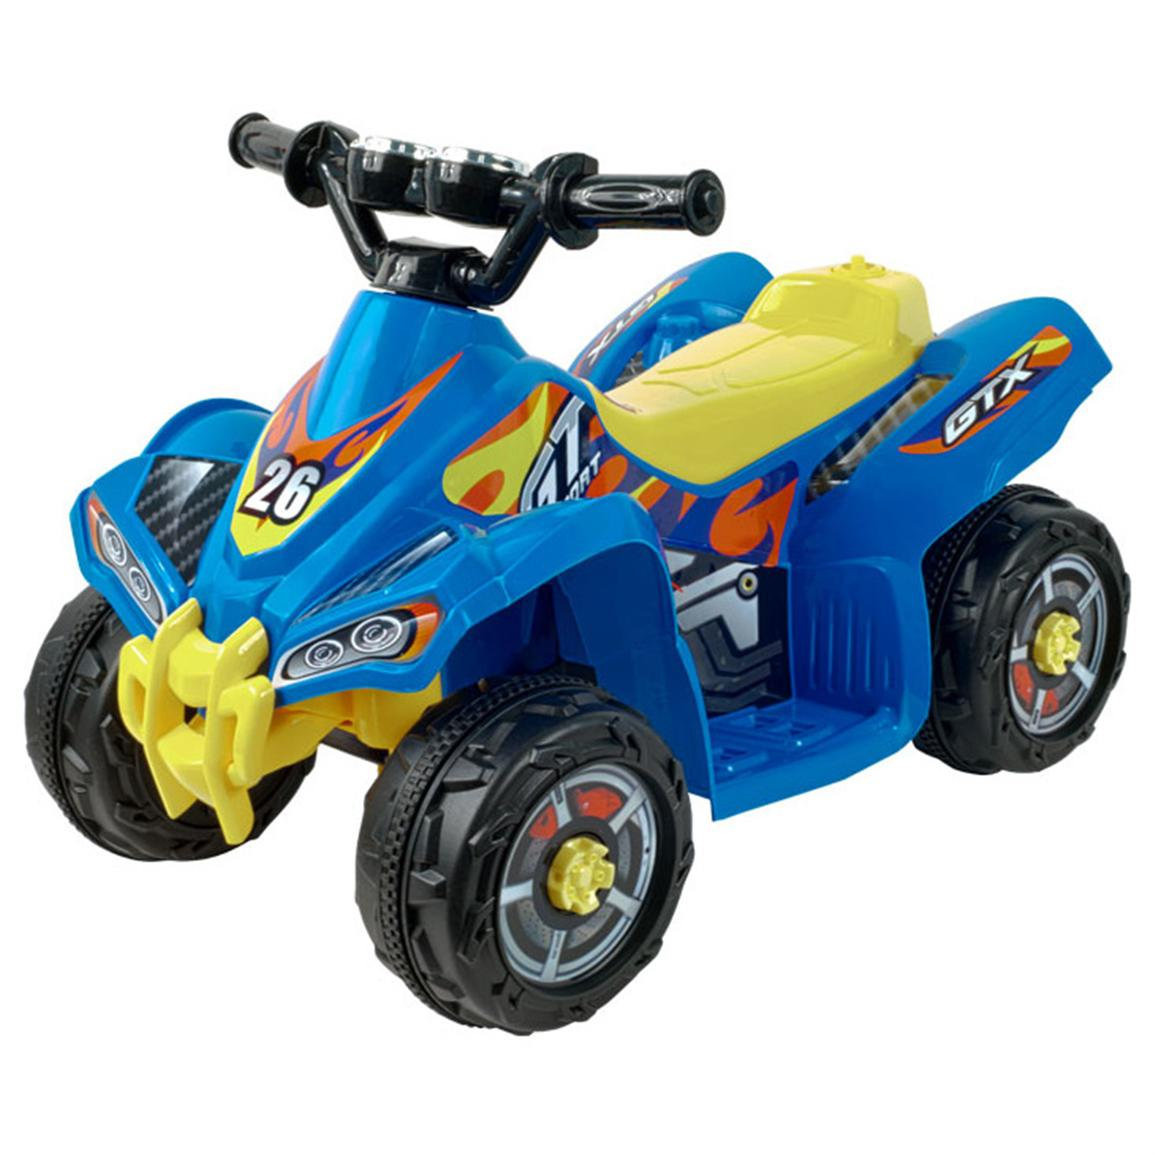 Lil' Rider™ Blue Bandit GT Sport Battery-operated Kids' ATV